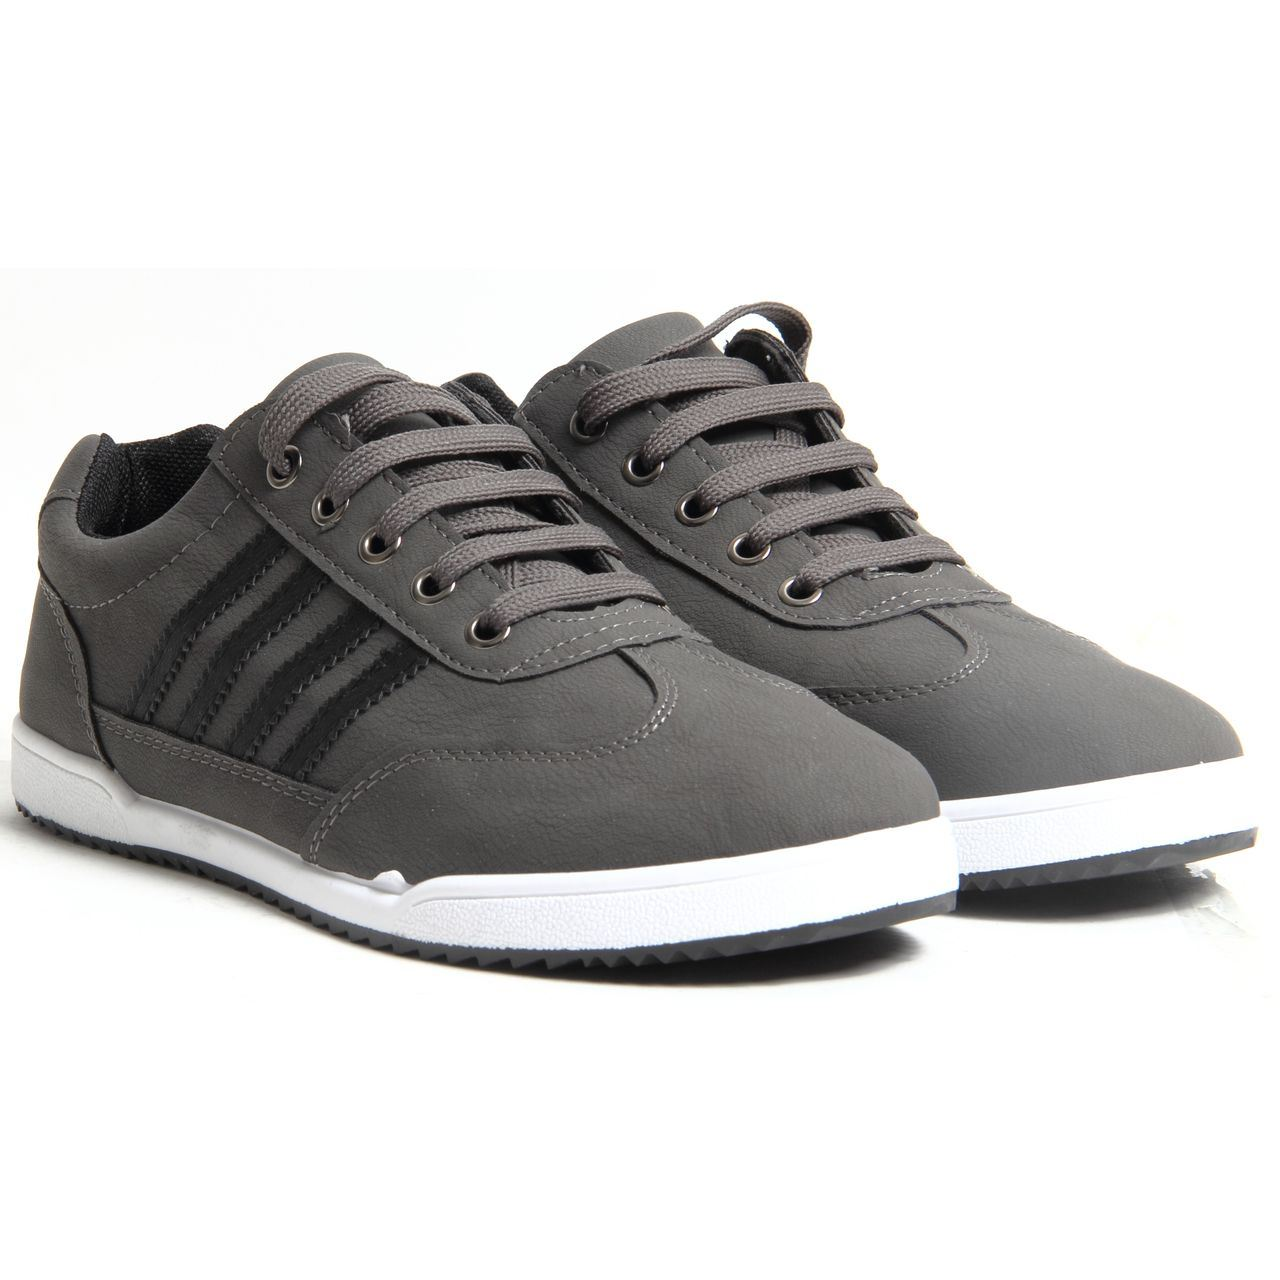 Mens Lace Up Faux Leather Casual Trainers Flat Sole ...